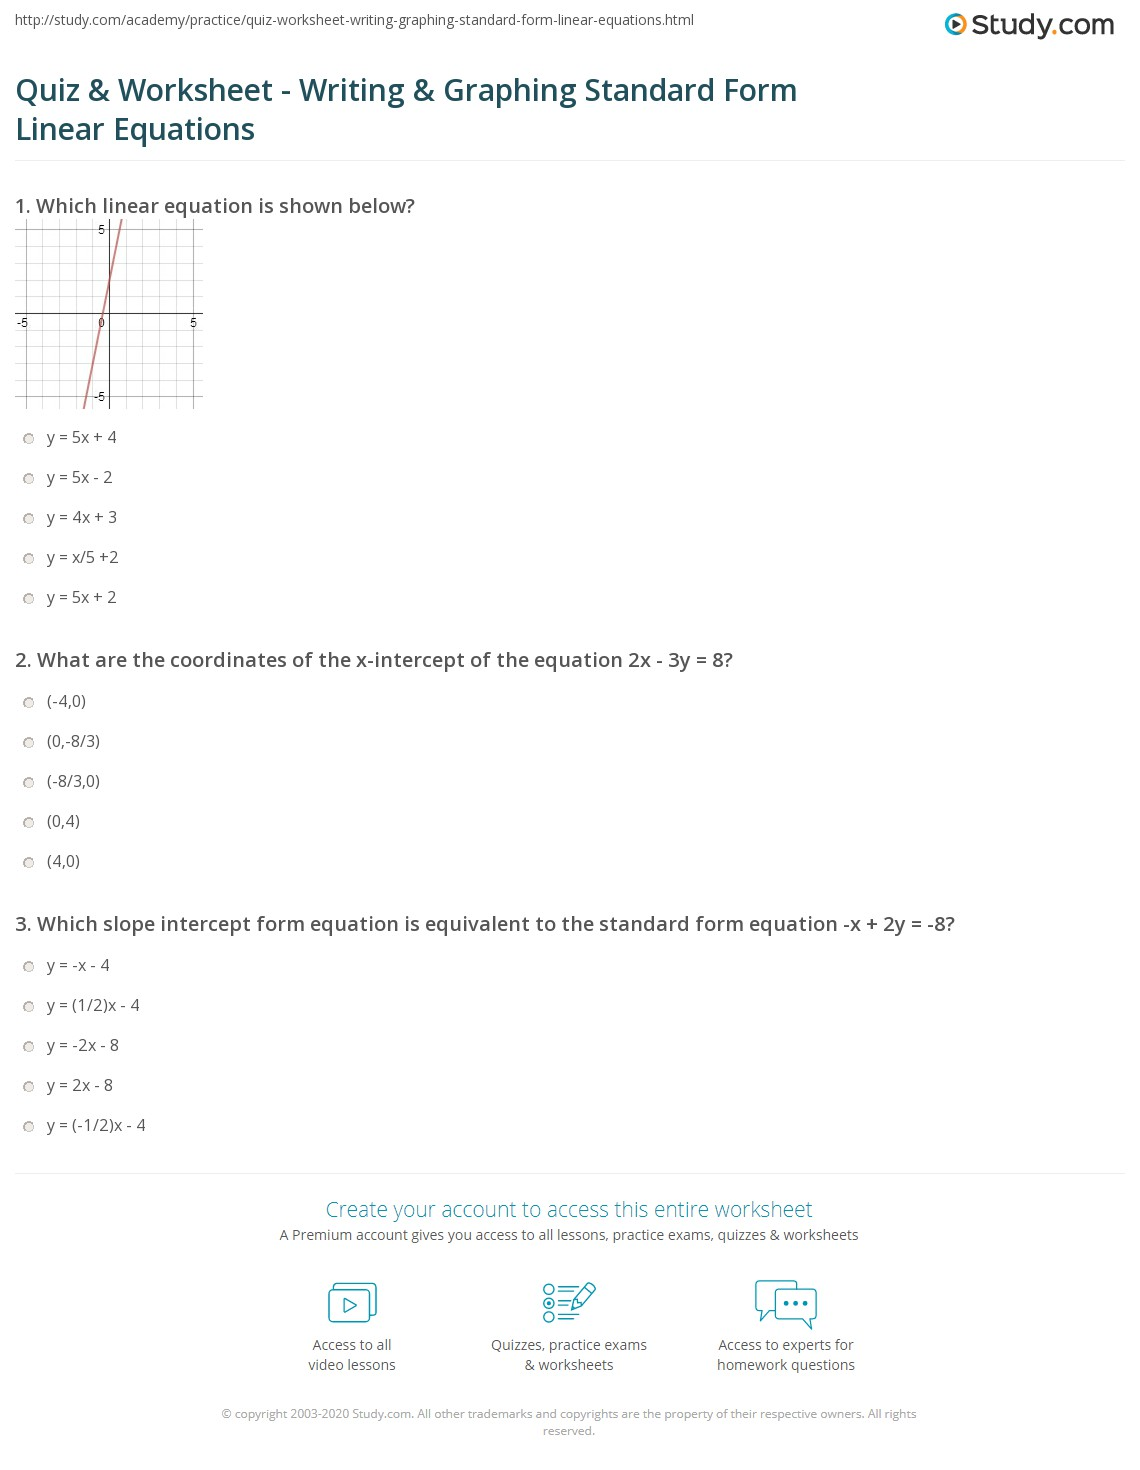 Converting To Slope Intercept Form And Graphing Worksheet